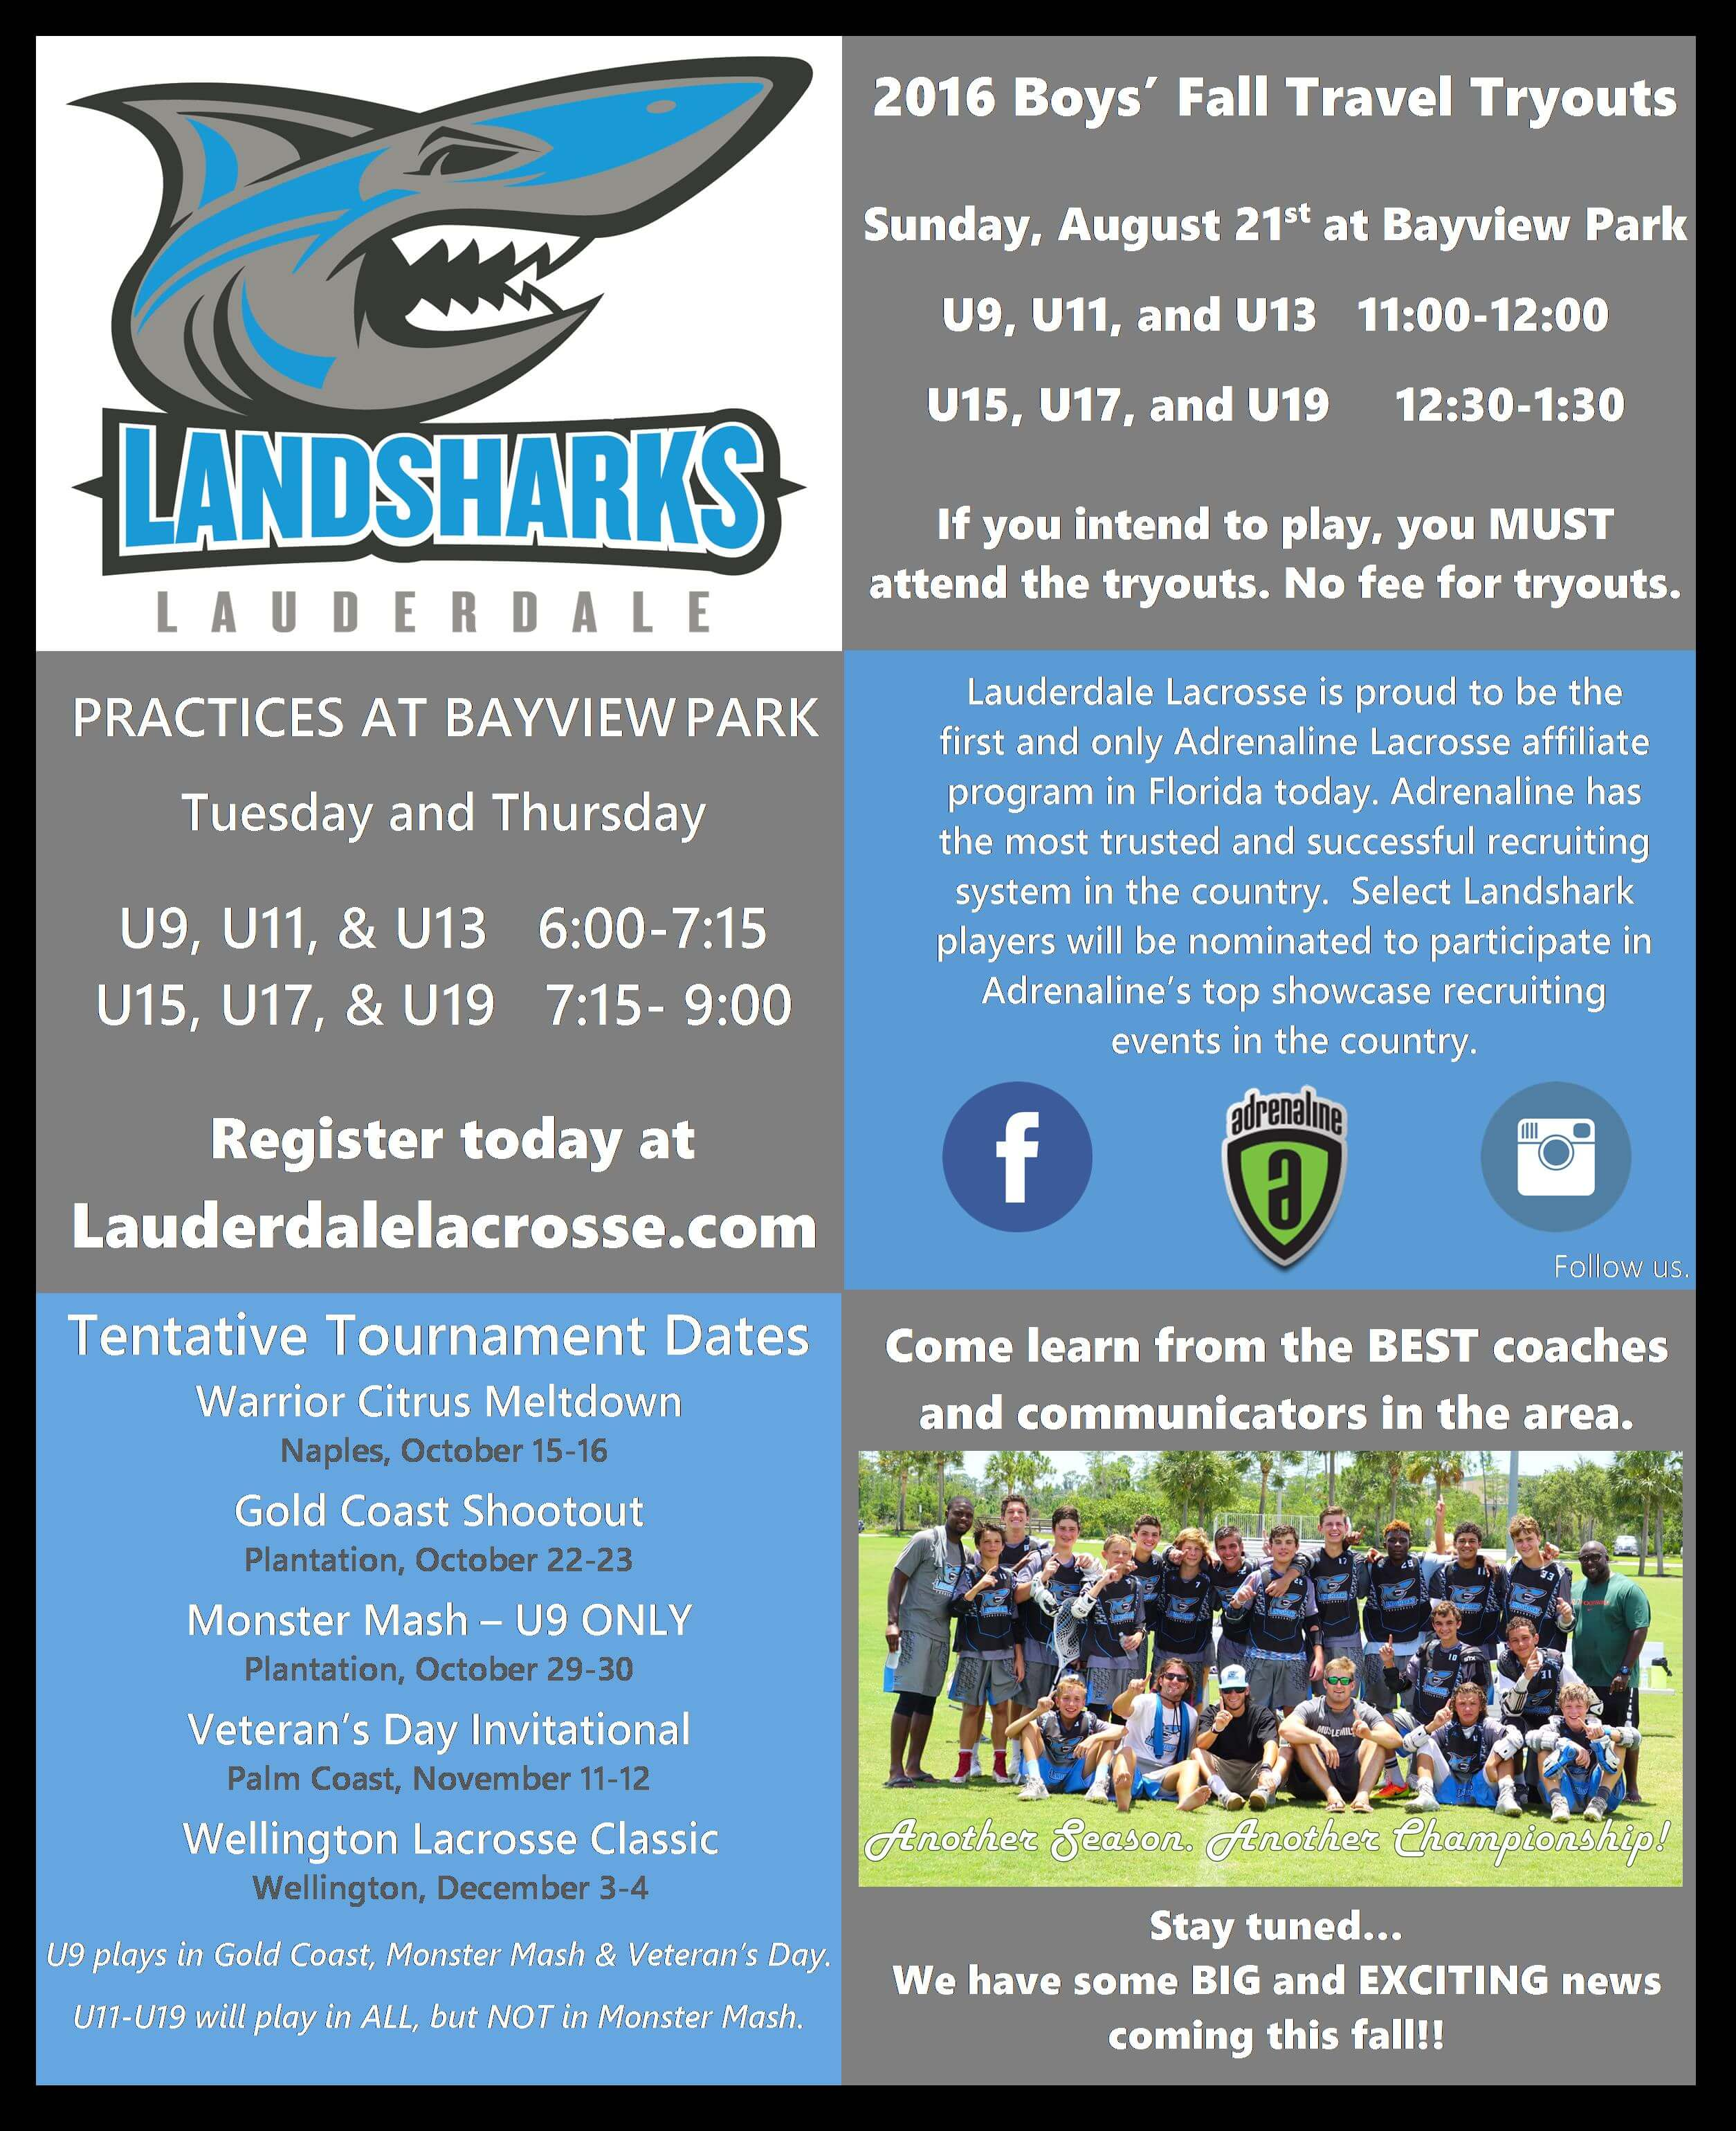 Landsharks Fall 2016